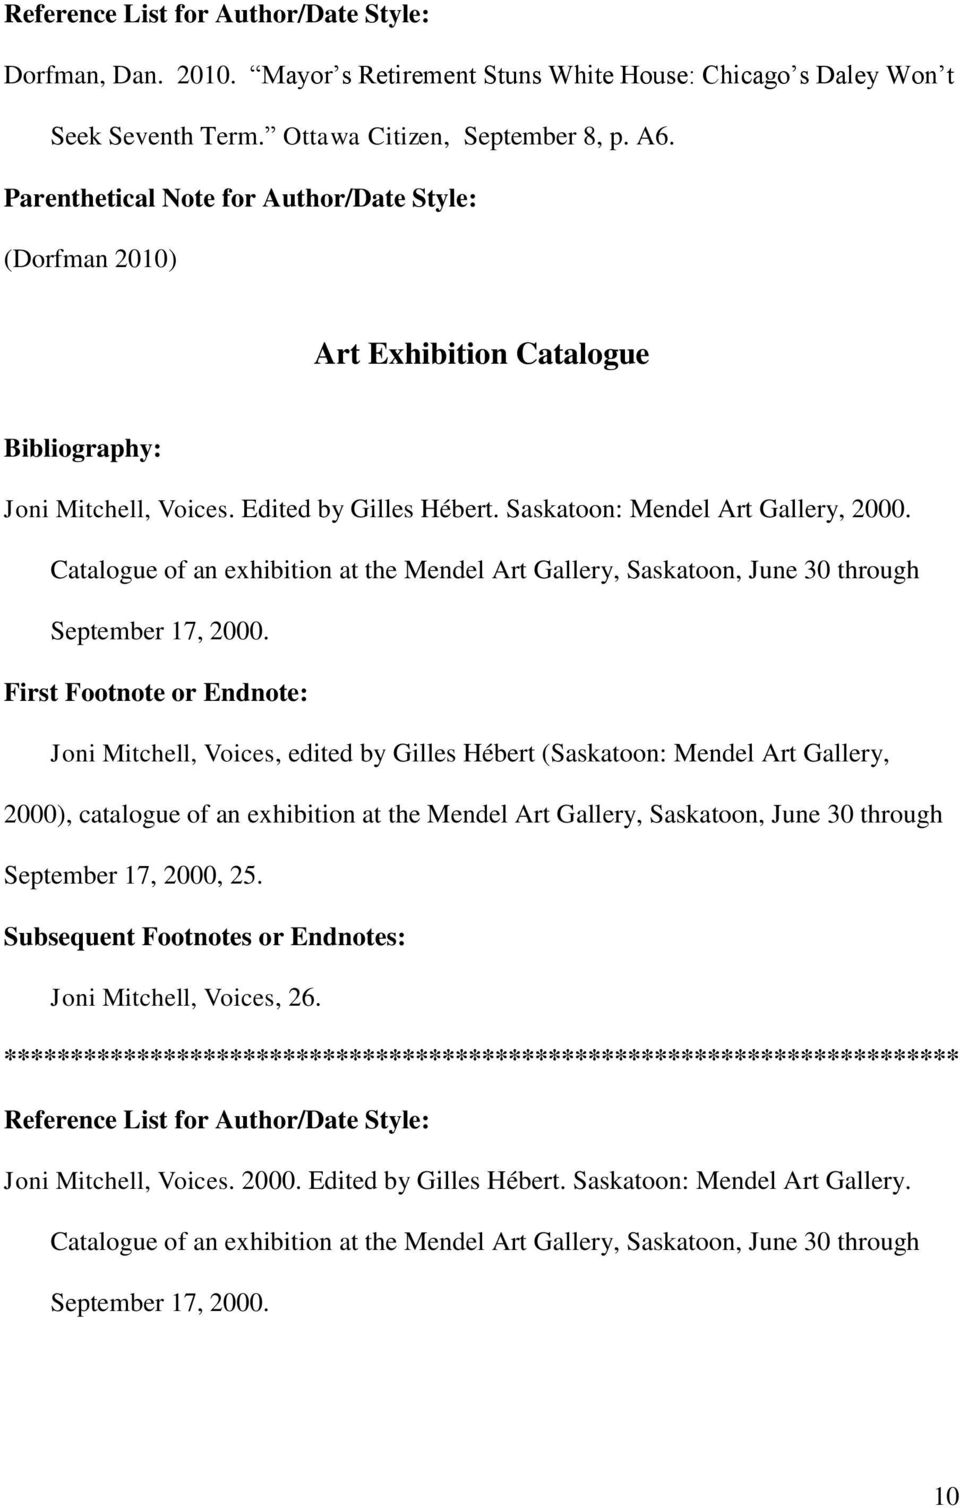 Catalogue of an exhibition at the Mendel Art Gallery, Saskatoon, June 30 through September 17, 2000.